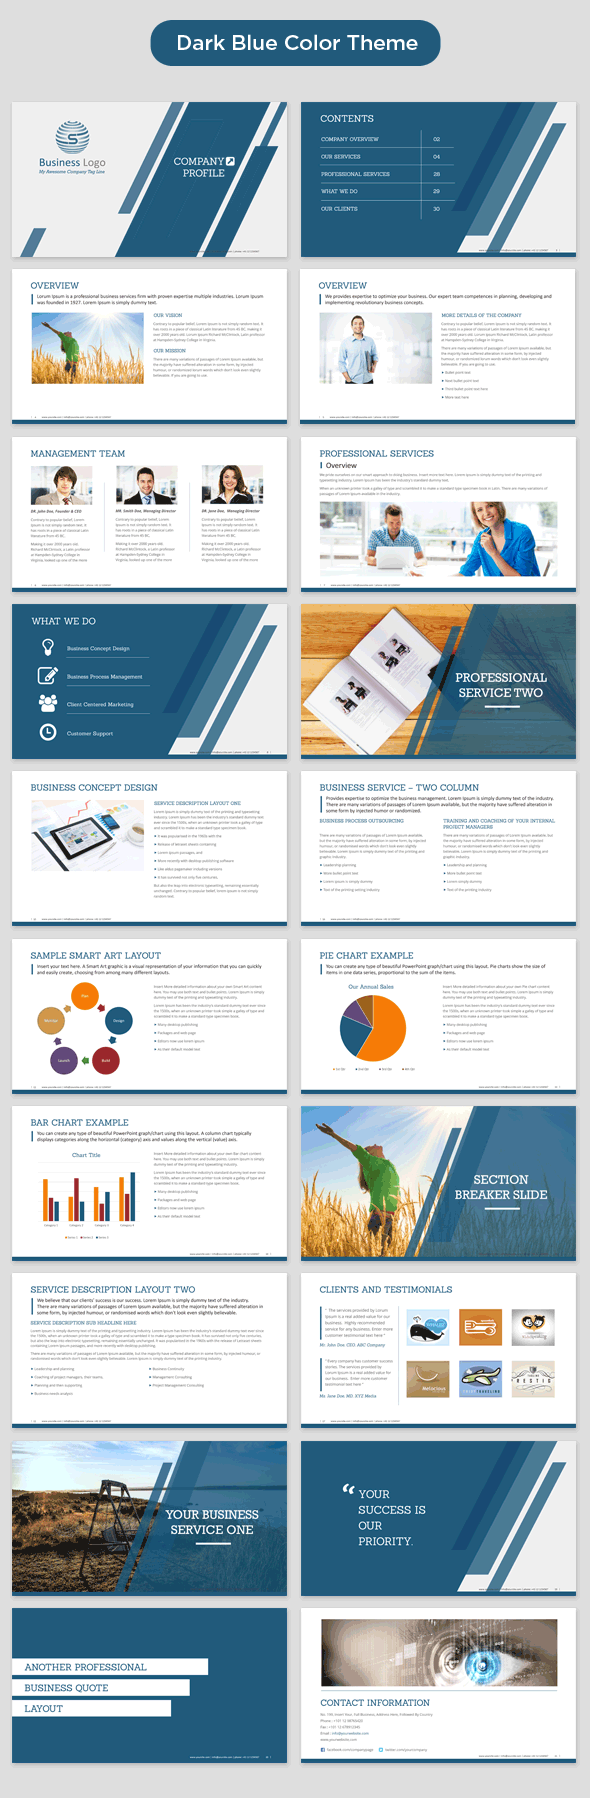 Company Profile Powerpoint Template 350 Master Ppt